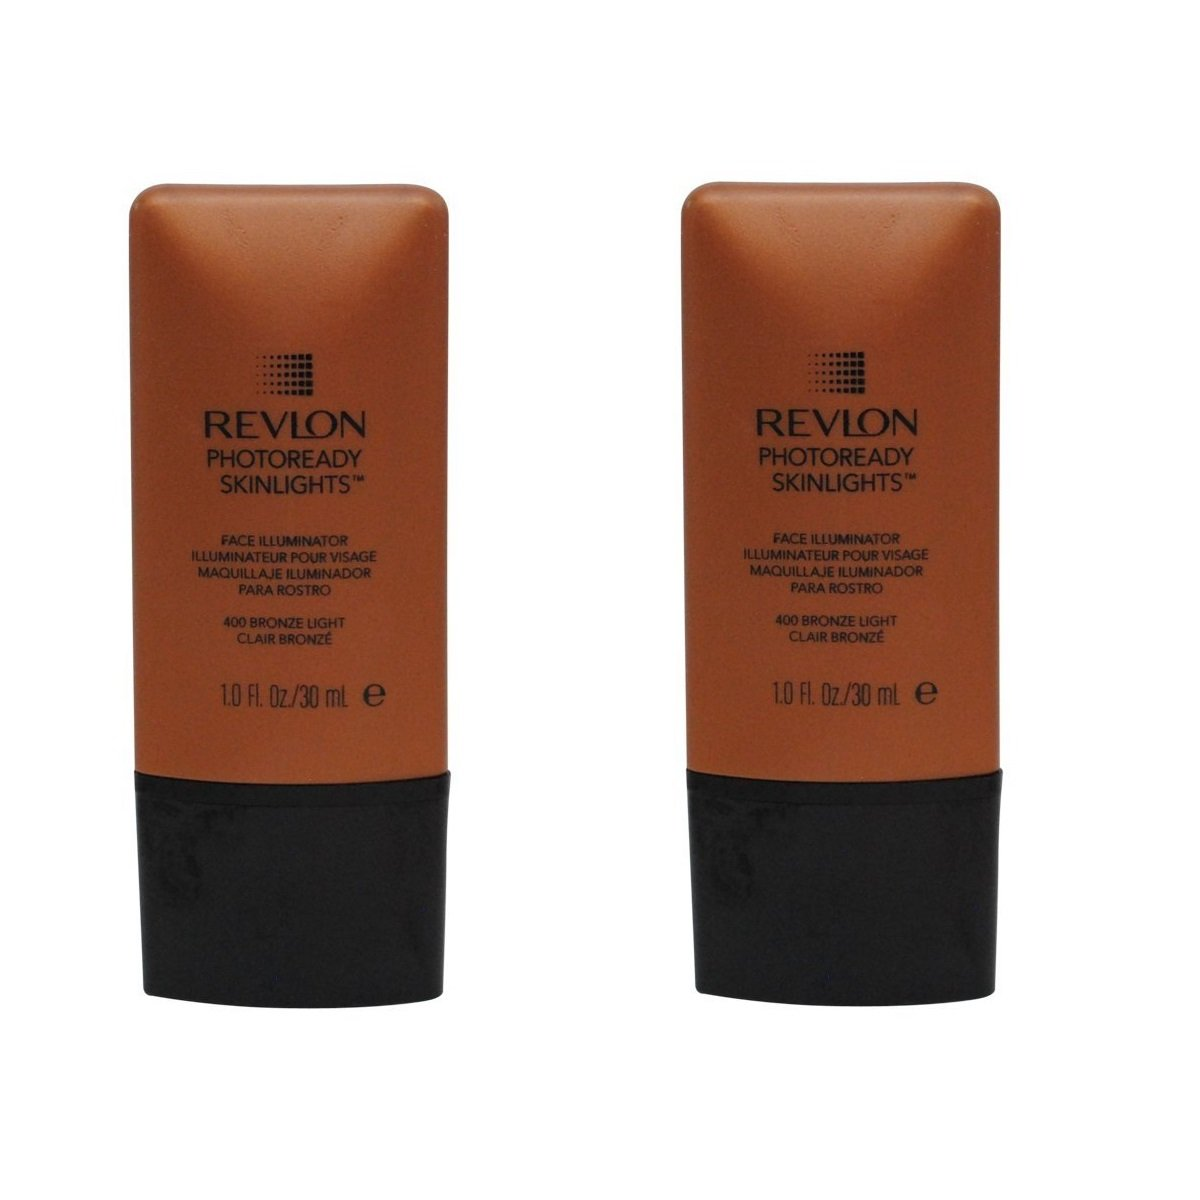 Revlon Photoready Skinlights Face Illuminator ~ Bronze Light 400 (2 Pack) + FREE LA Cross Tweezers 71817